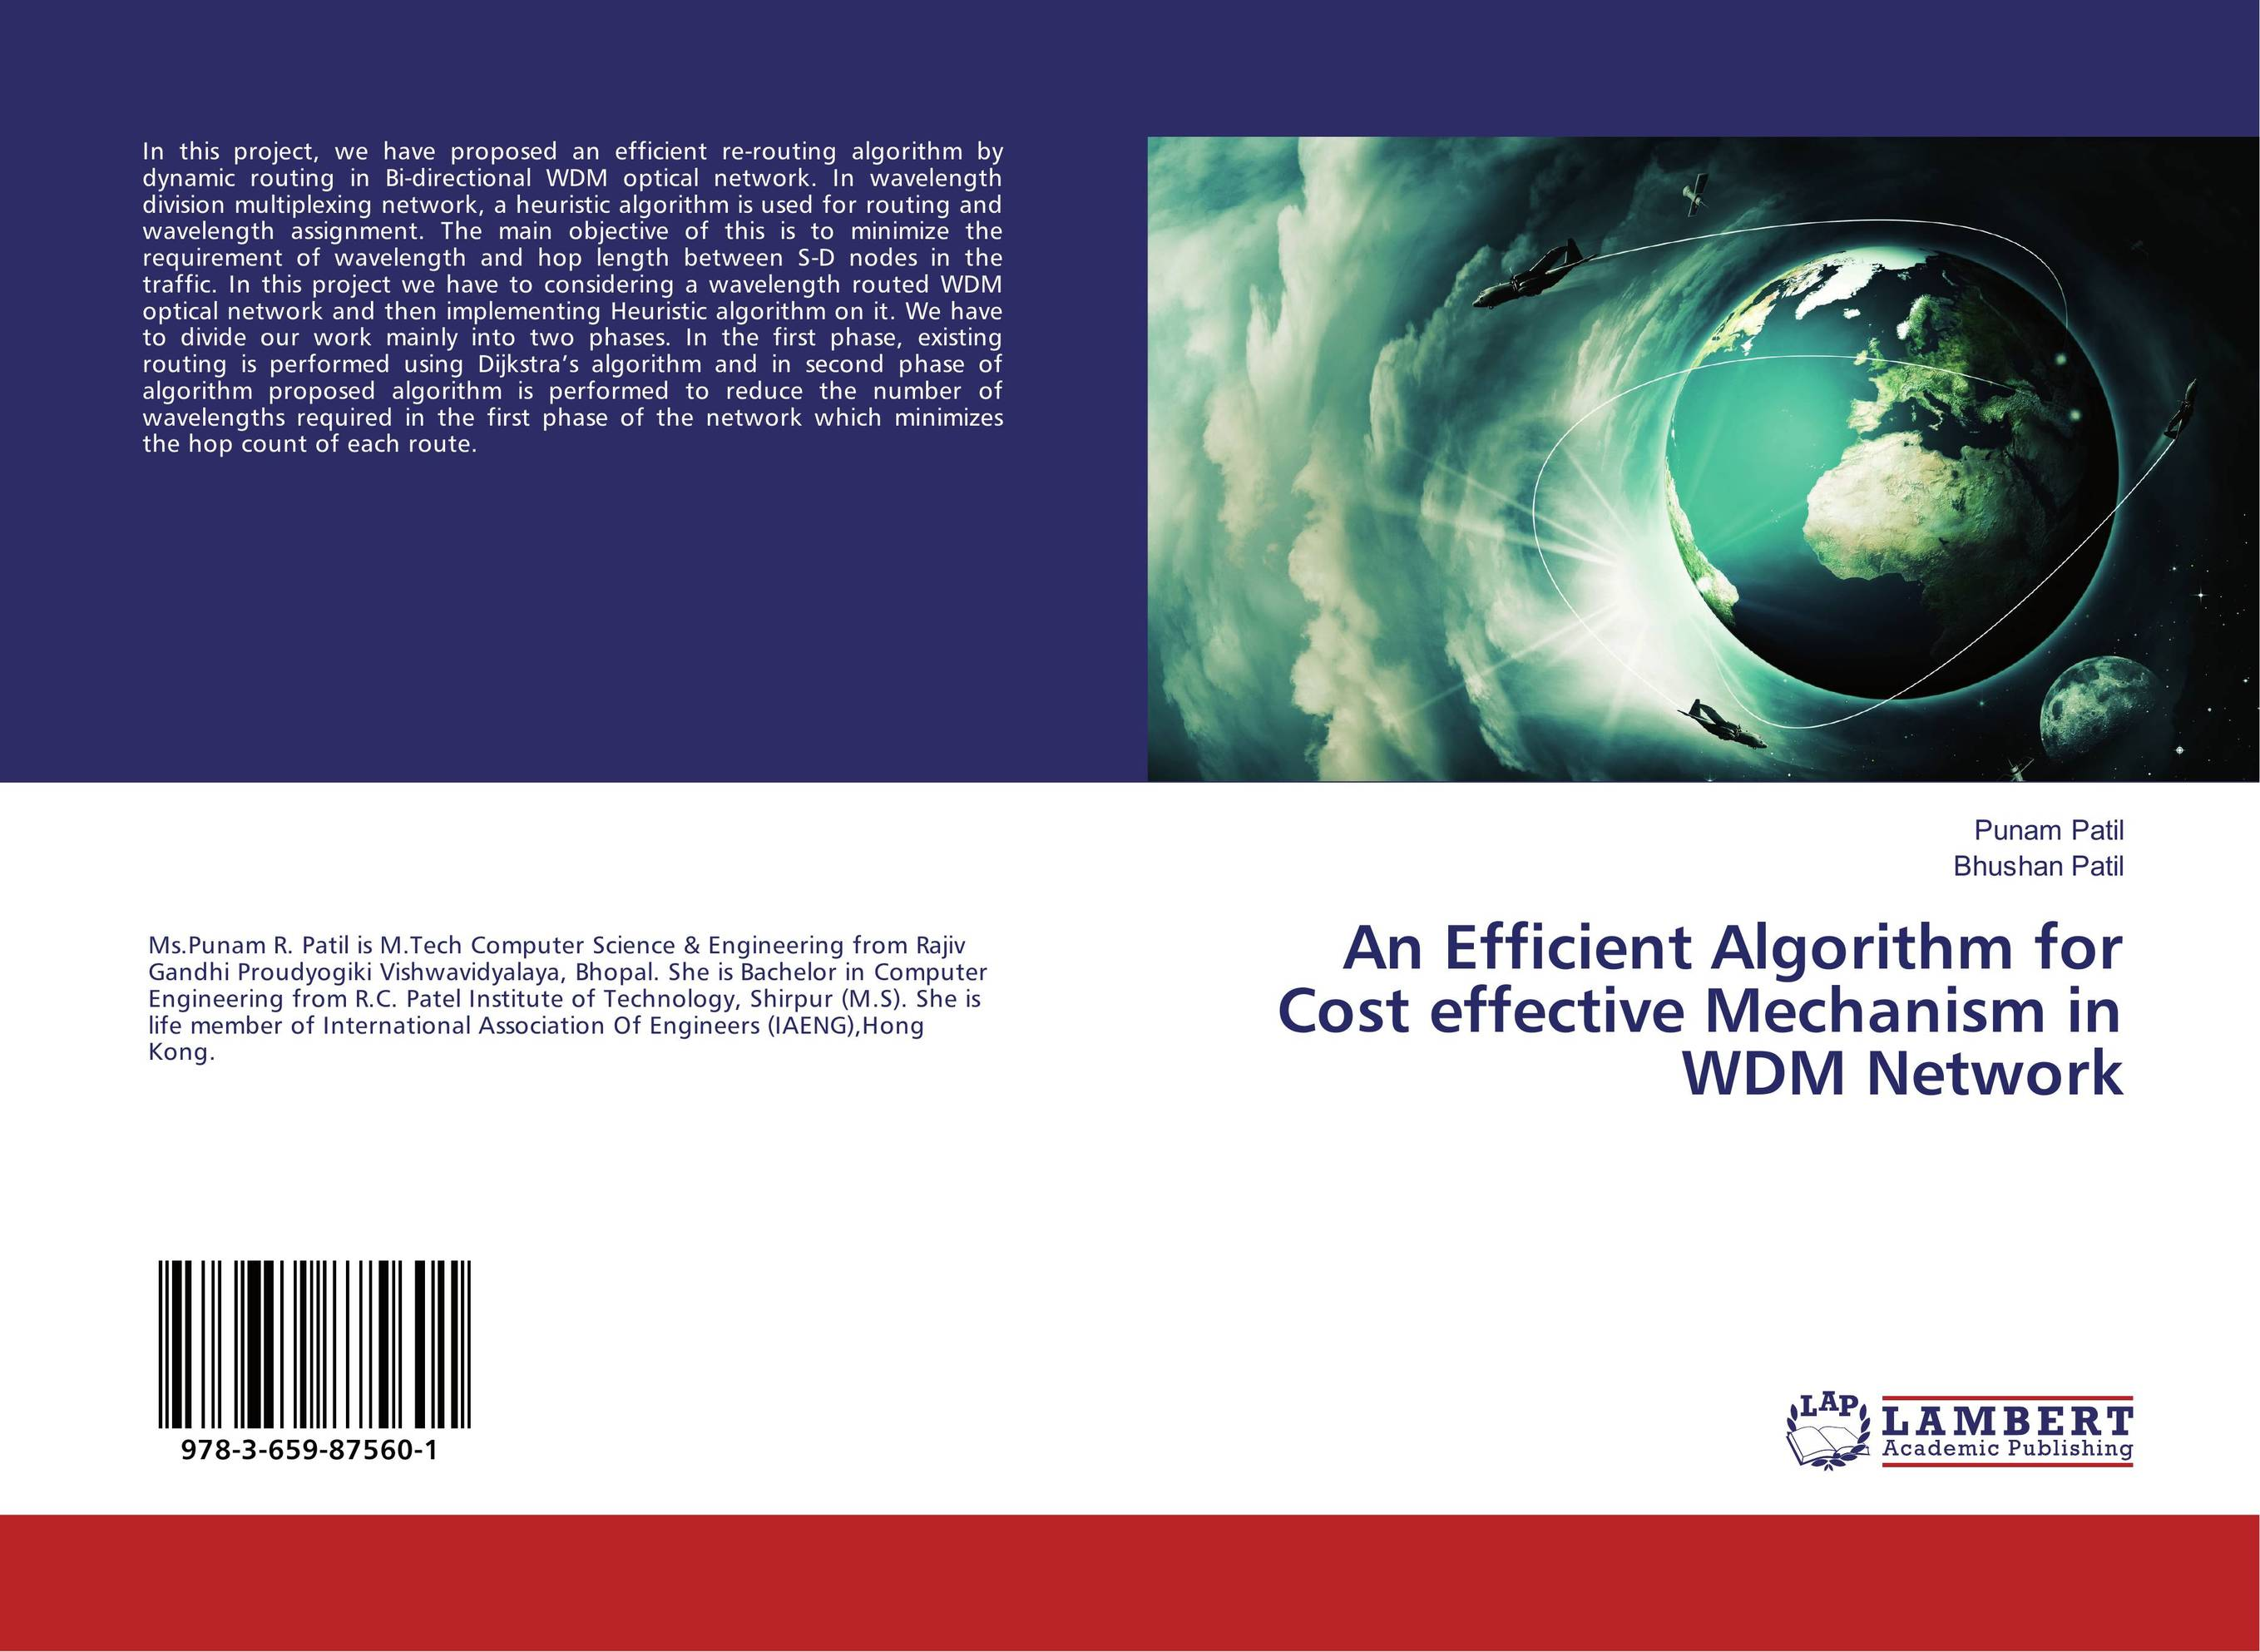 An Efficient Algorithm for Cost effective Mechanism in WDM Network